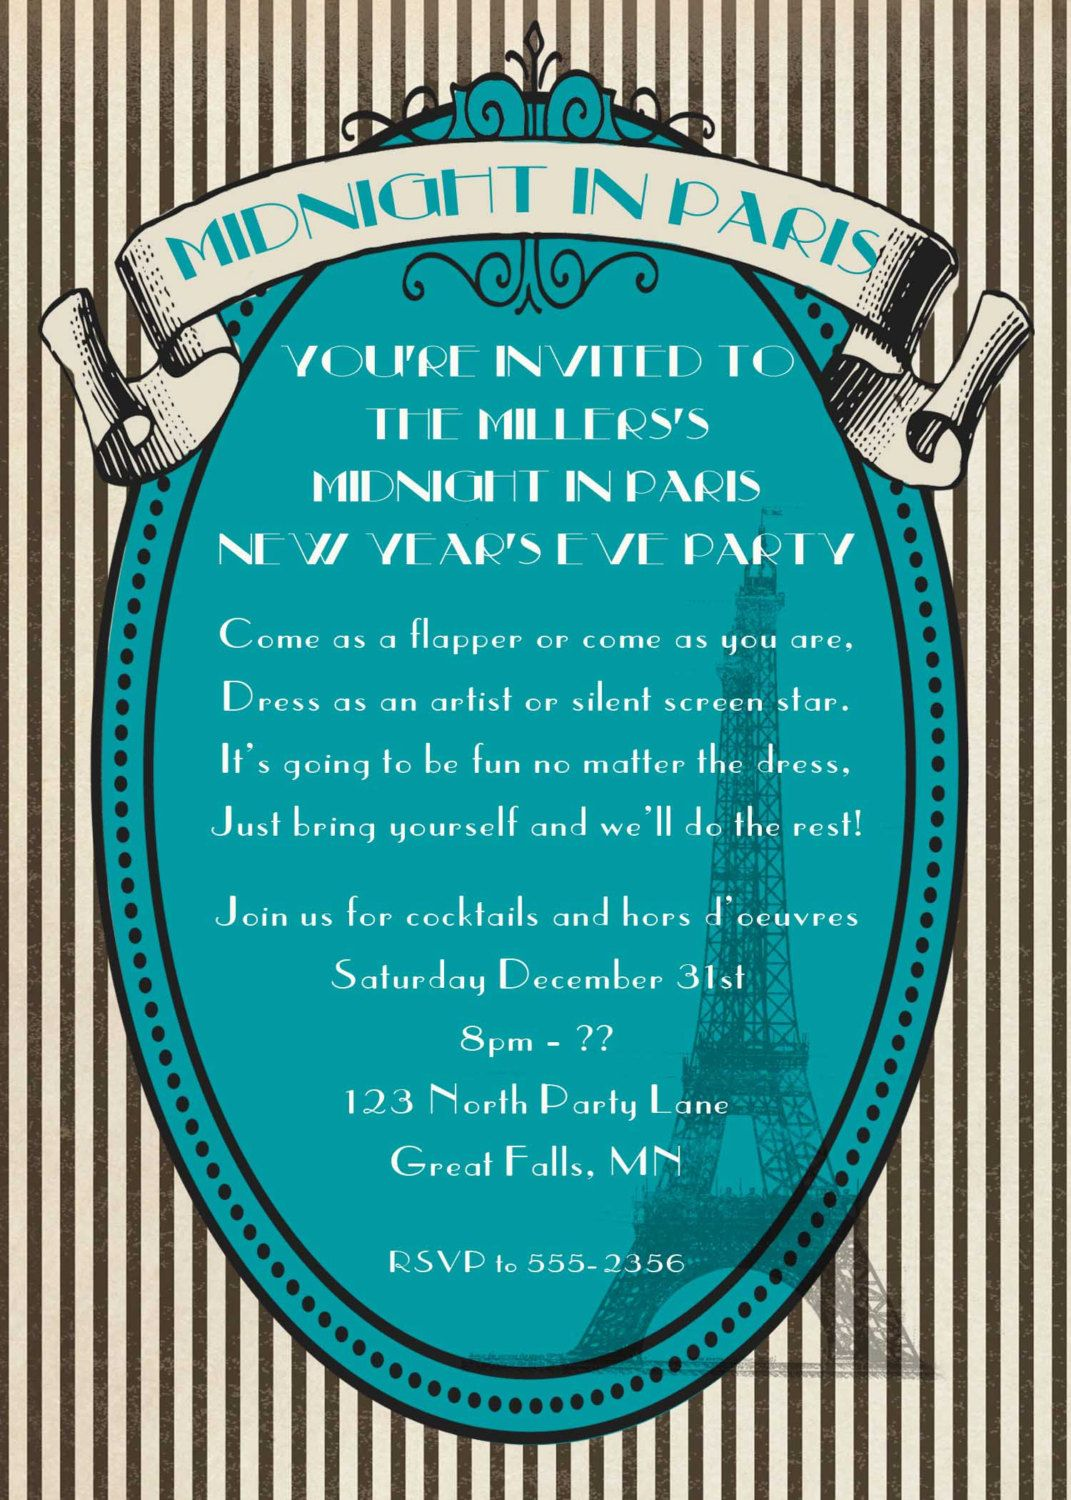 New Years Eve party invitation, Midnight in Paris